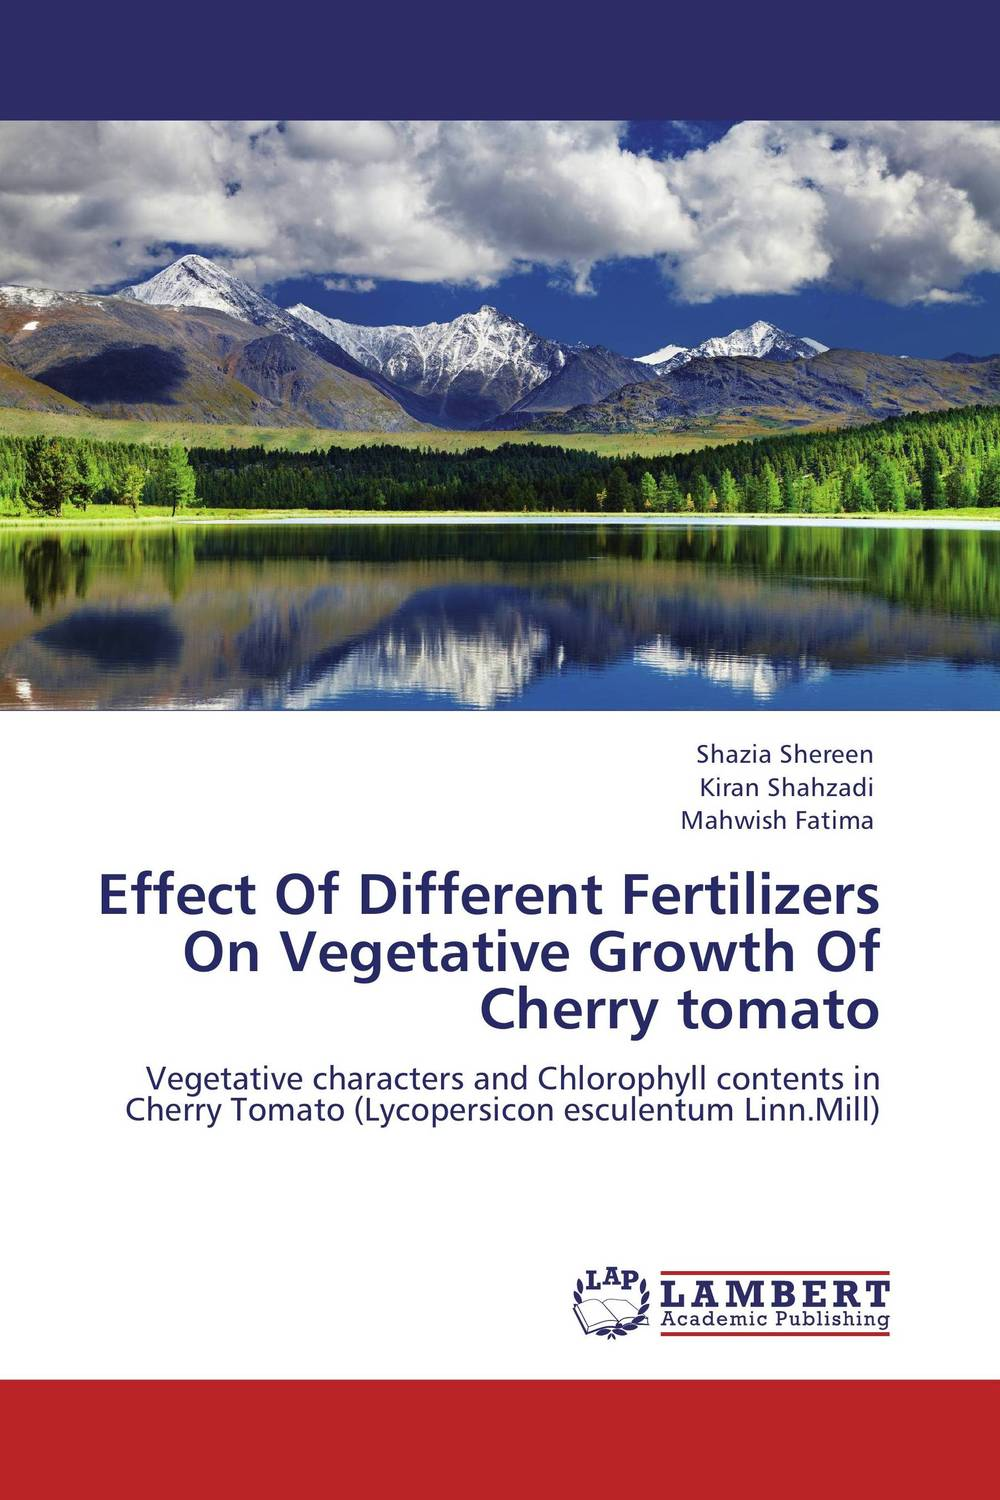 Effect Of Different Fertilizers On Vegetative Growth Of Cherry tomato